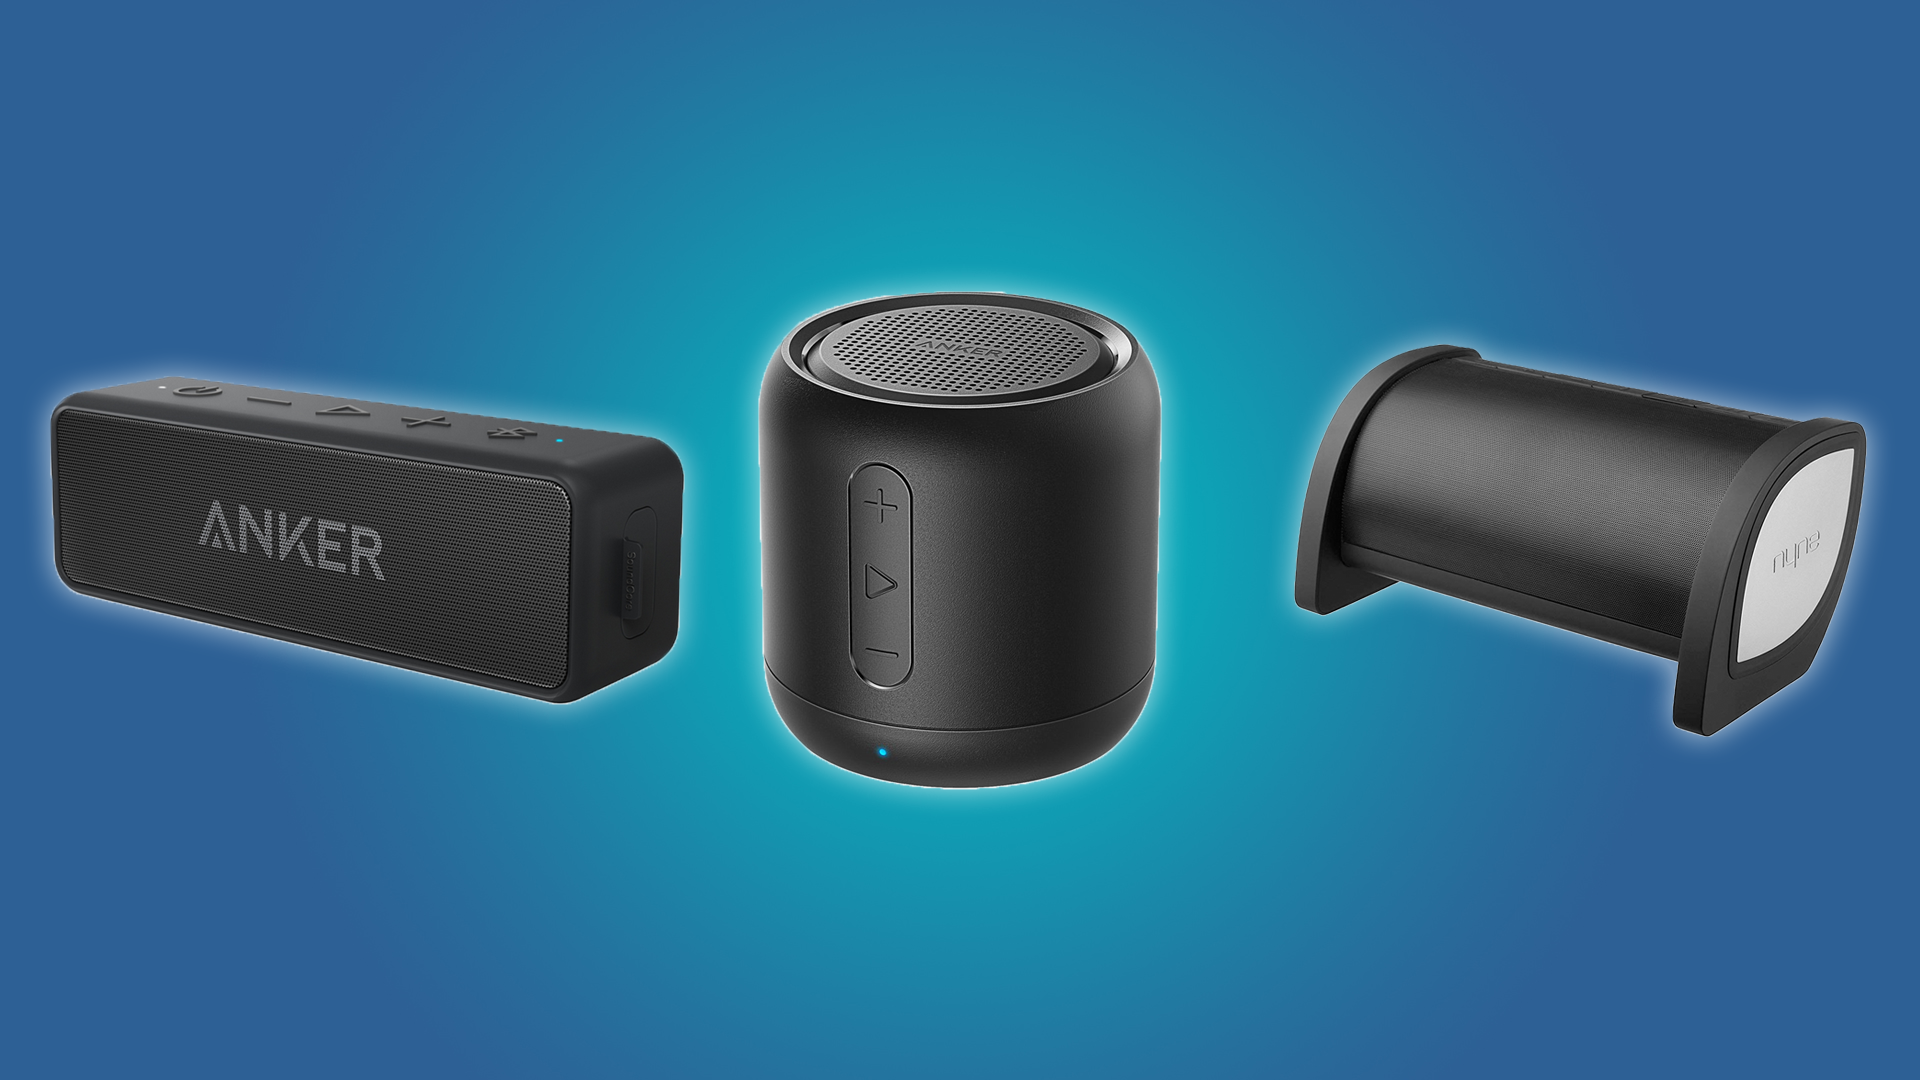 The NYNE Bass, Anker SoundCore Mini, and Anker SoundCore 2 Bluetooth Speakers